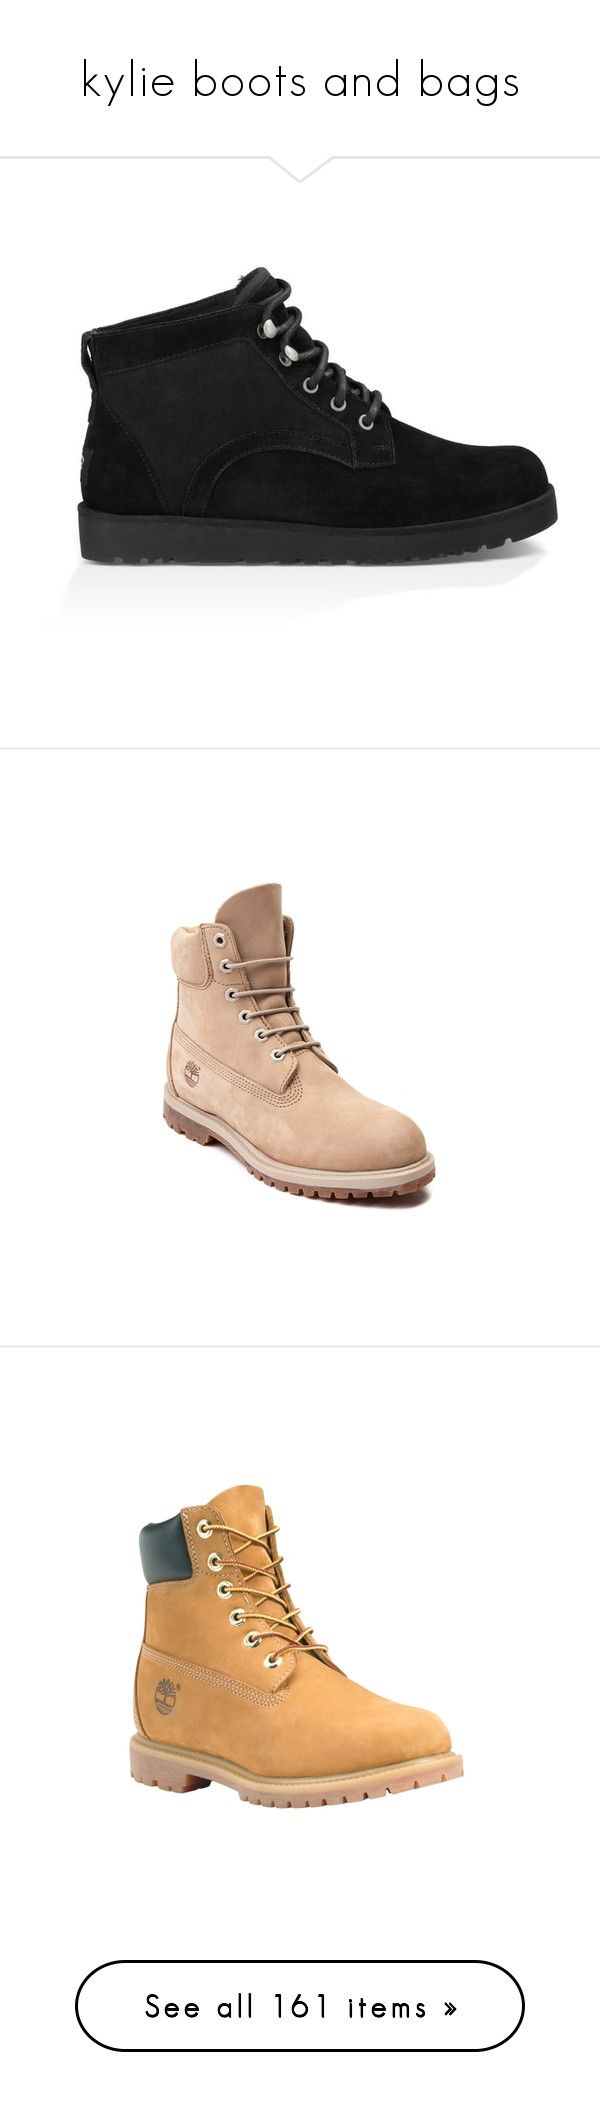 """""""kylie boots and bags"""" by marilia13 ❤ liked on Polyvore featuring shoes, boots, flexible shoes, lightweight boots, slim shoes, arch support shoes, traction shoes, timberland footwear, timberland shoes and timberland boots"""